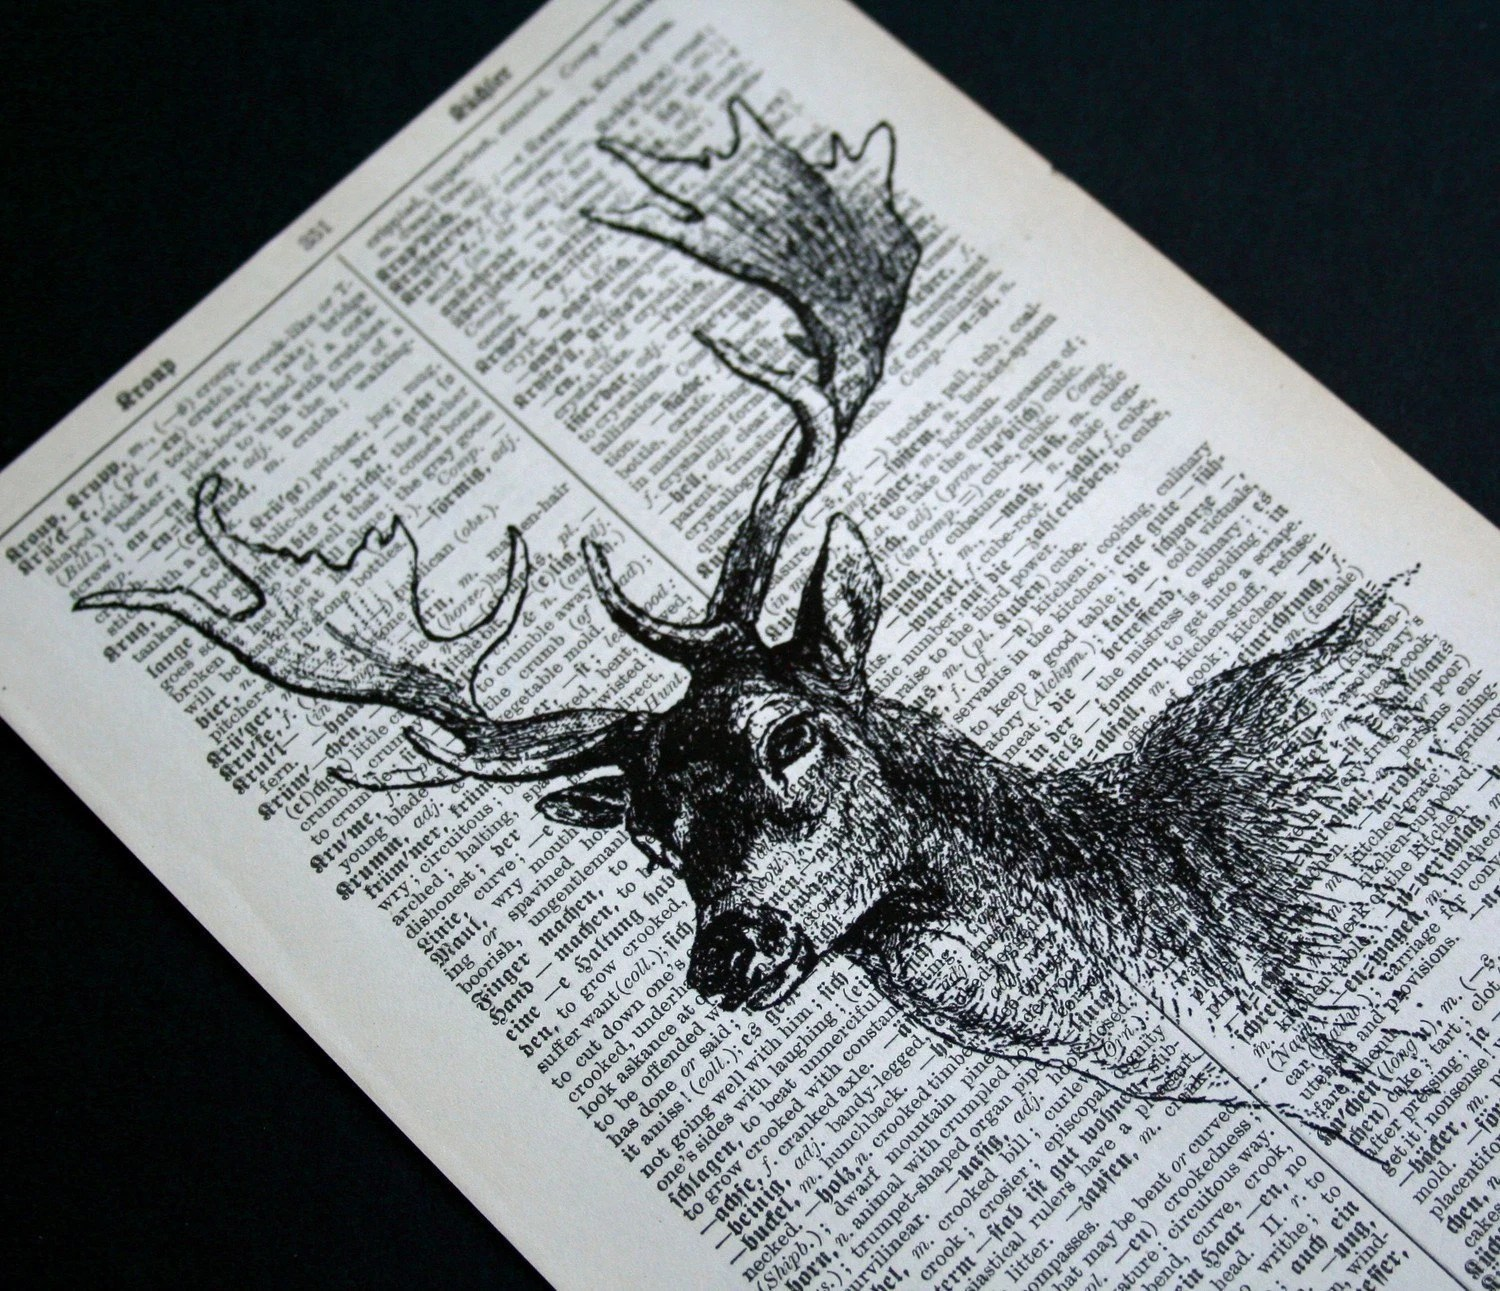 Deer Head Print on Vintage German Dictionary - 5 x 7